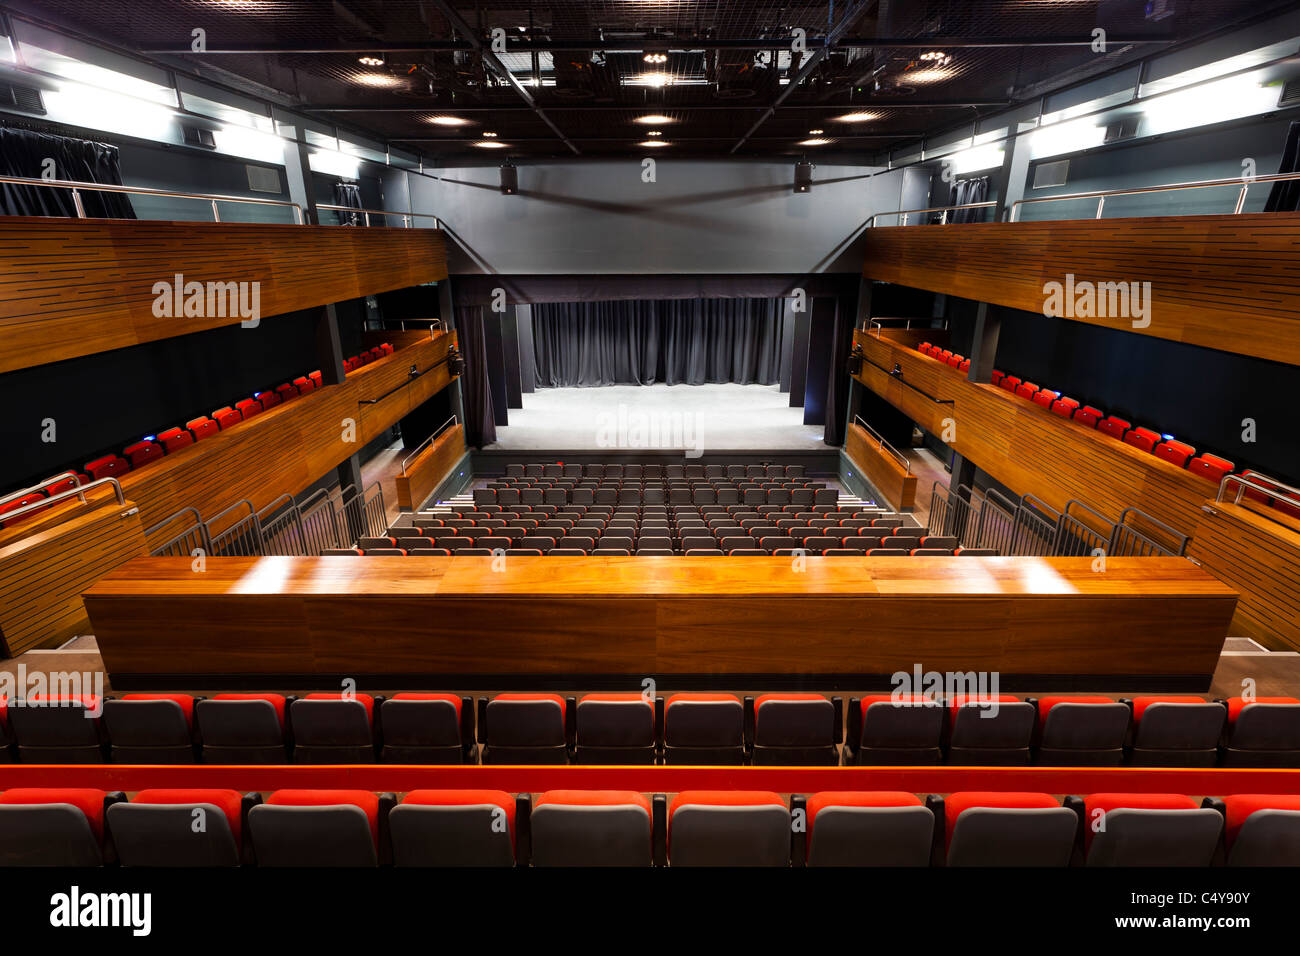 stepped seating on the auditorium of Berry Theatre looking towards the stage - Stock Image